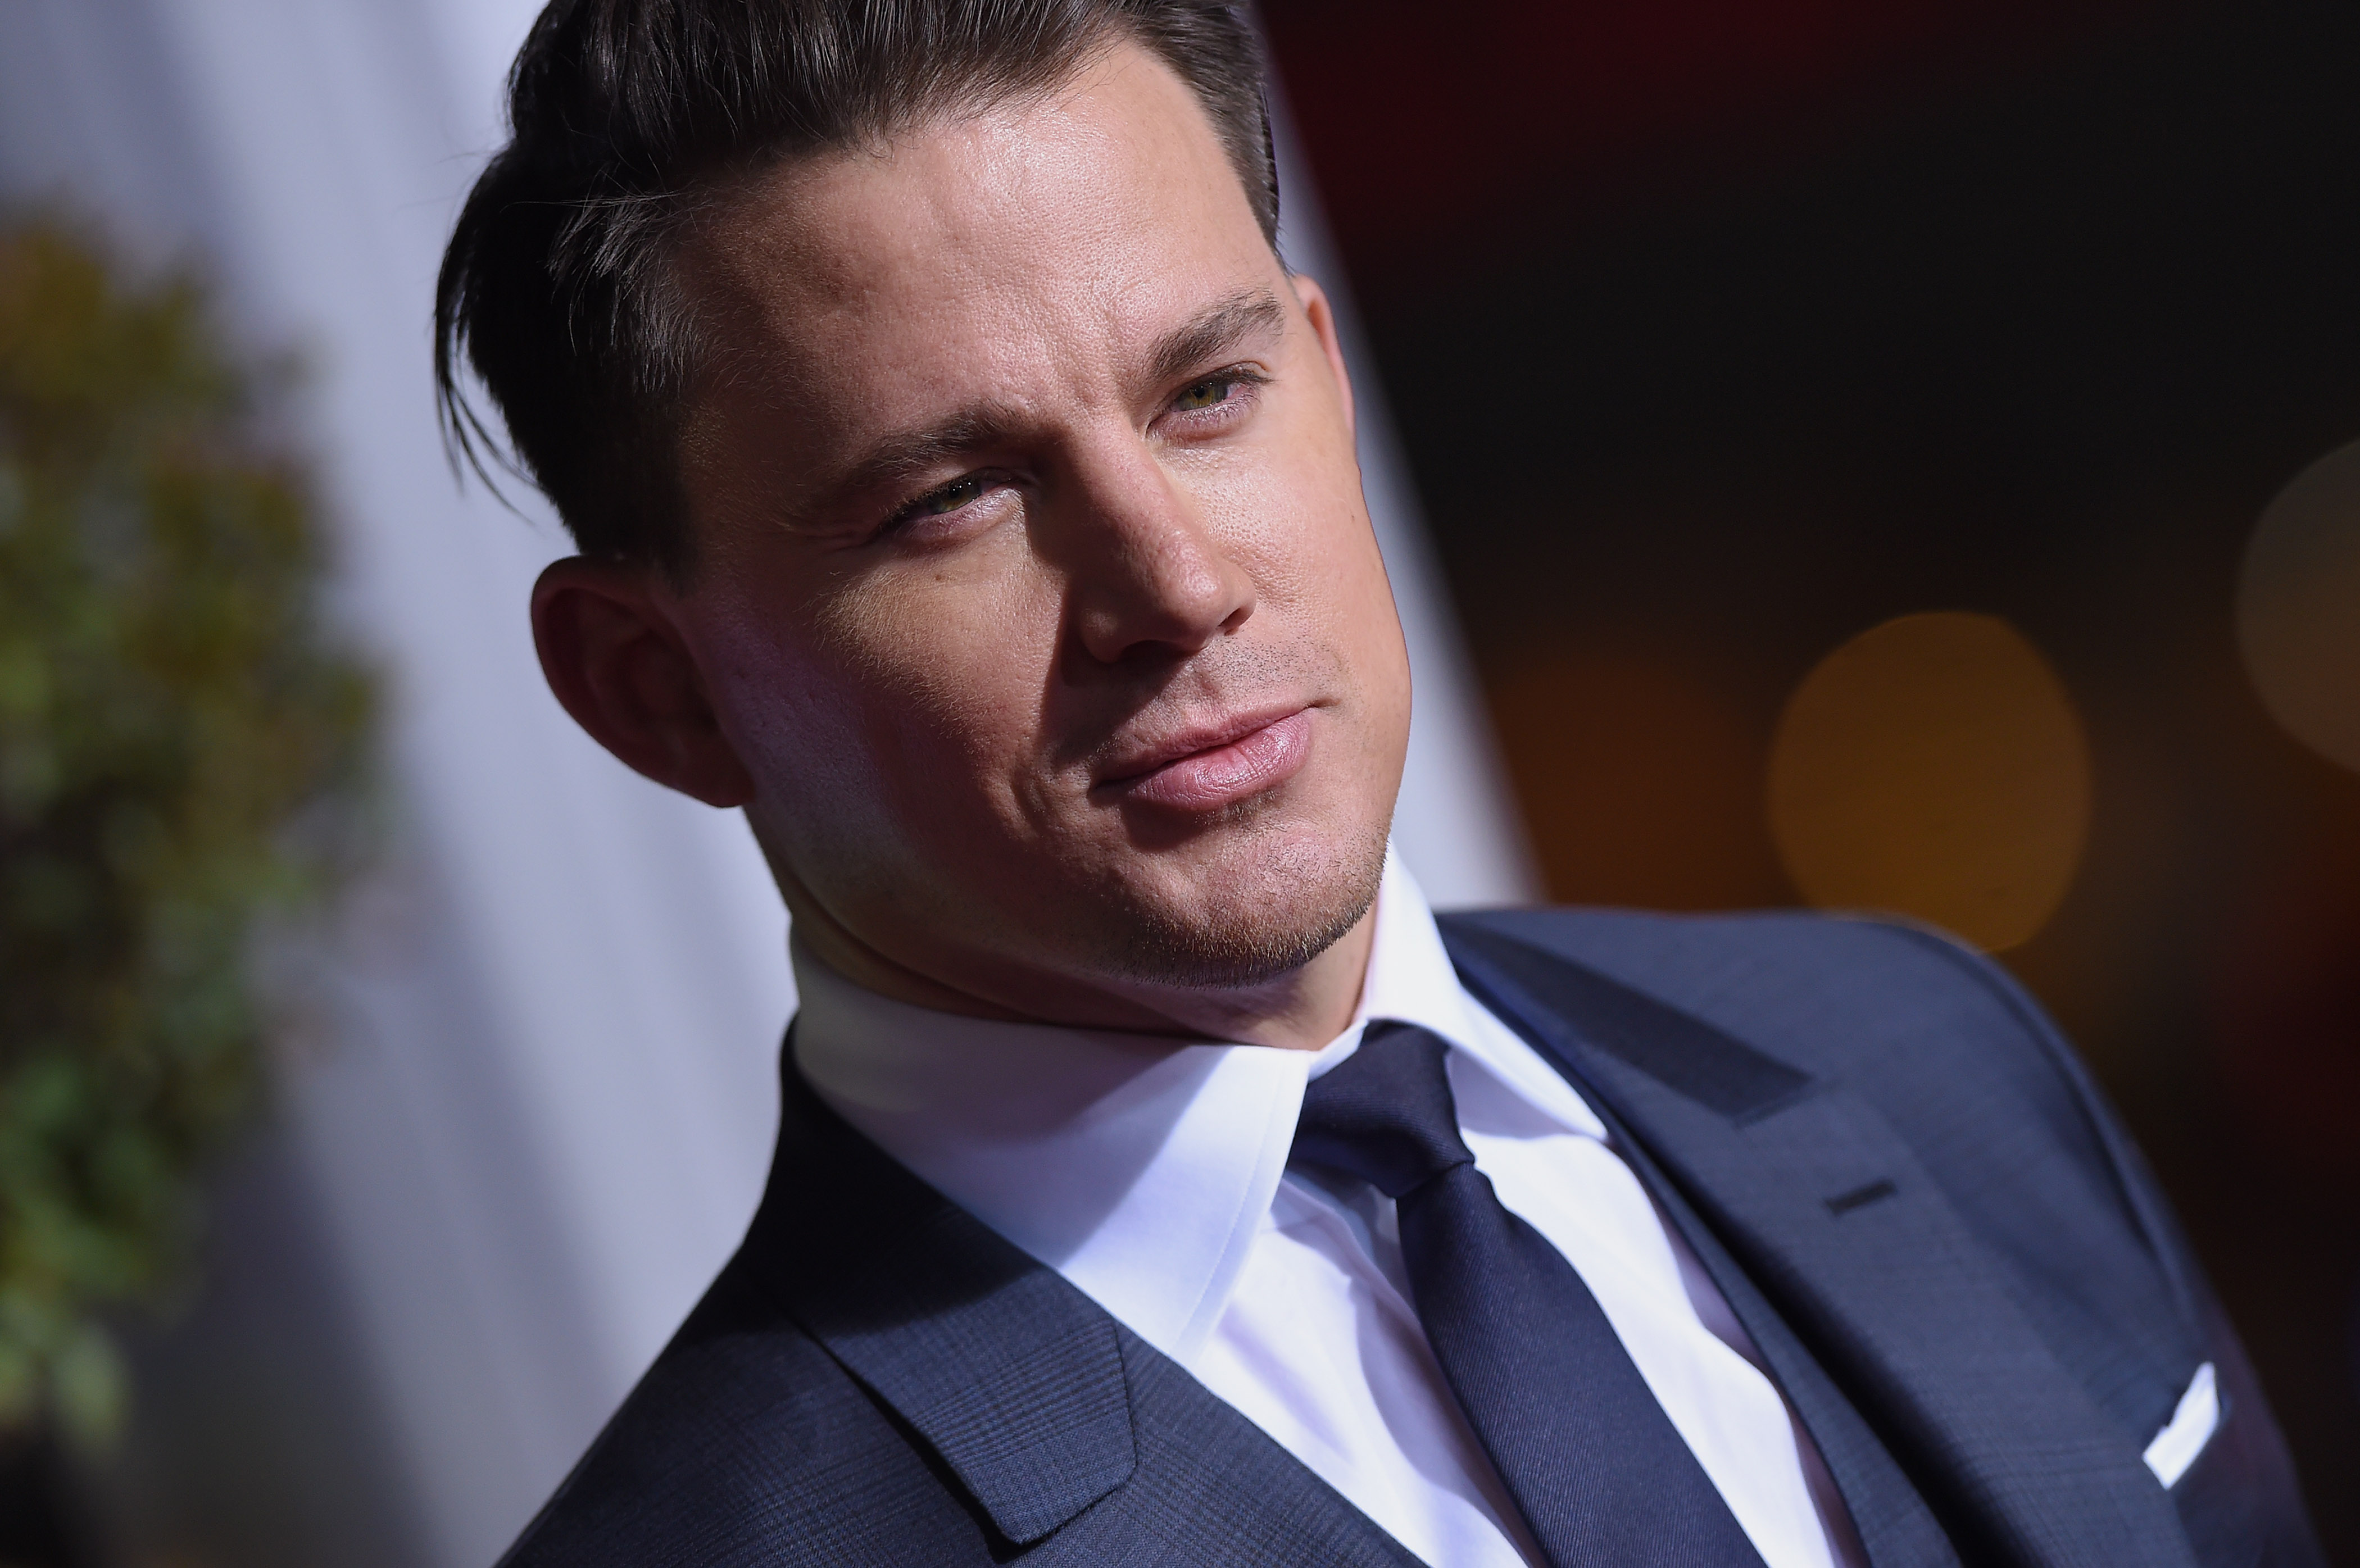 Channing Tatum arrives at the premiere of' 'Hail, Caesar!' at Regency Village Theatre on February 1, 2016 in Westwood, CA.